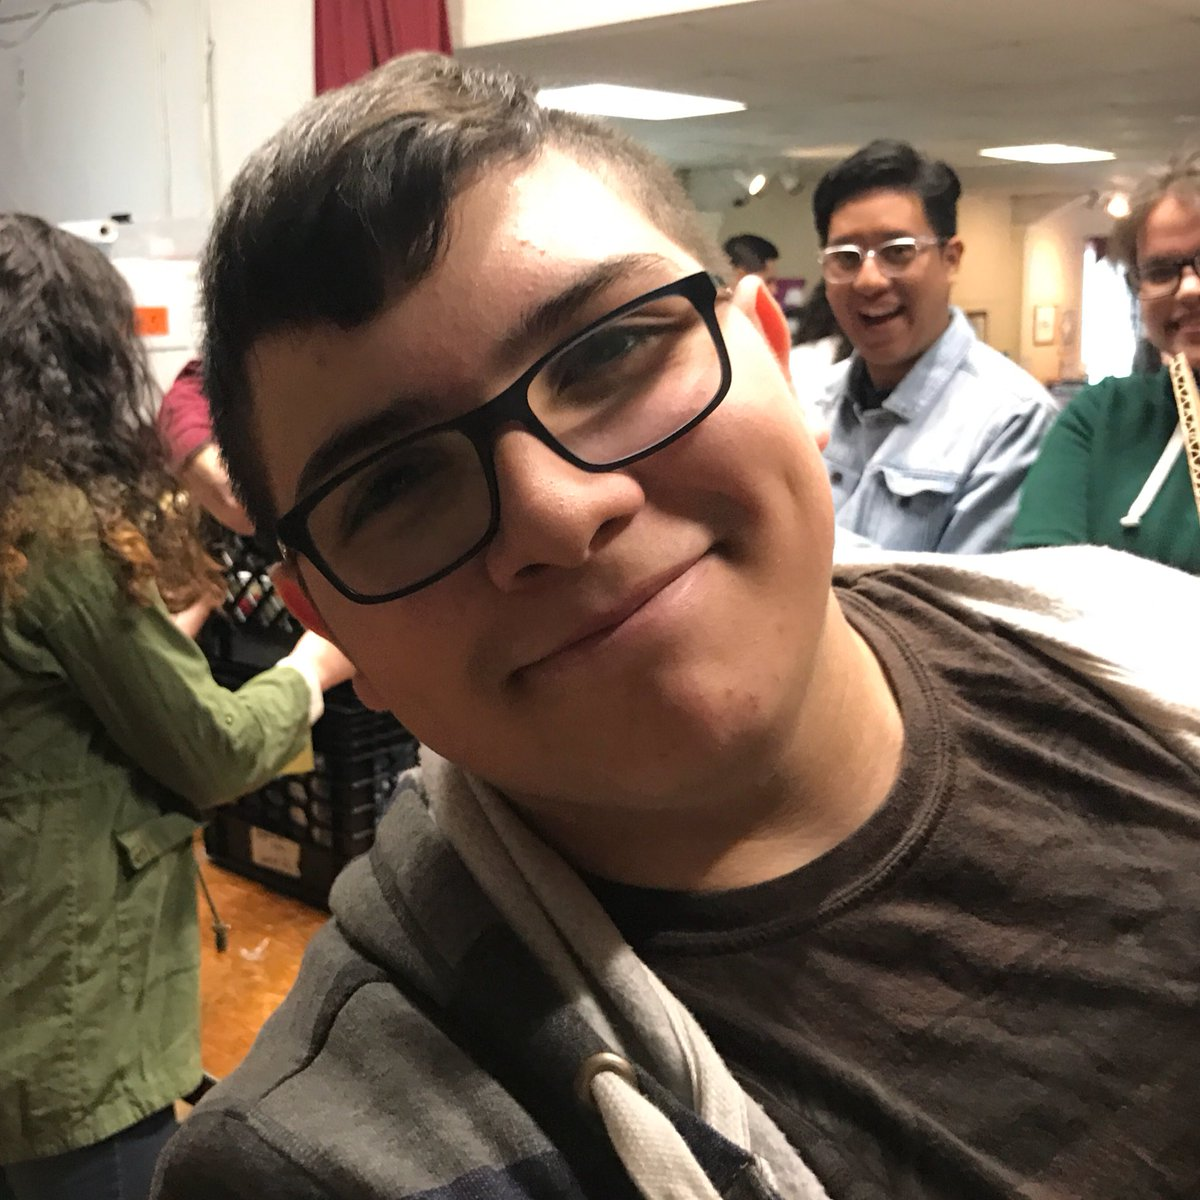 Meet Jake ! Jake can stump any attorney while he is on the stand. He has a funny personality and loves Star Wars ! #mocktrial #profile<br>http://pic.twitter.com/dSzp0k6xVG